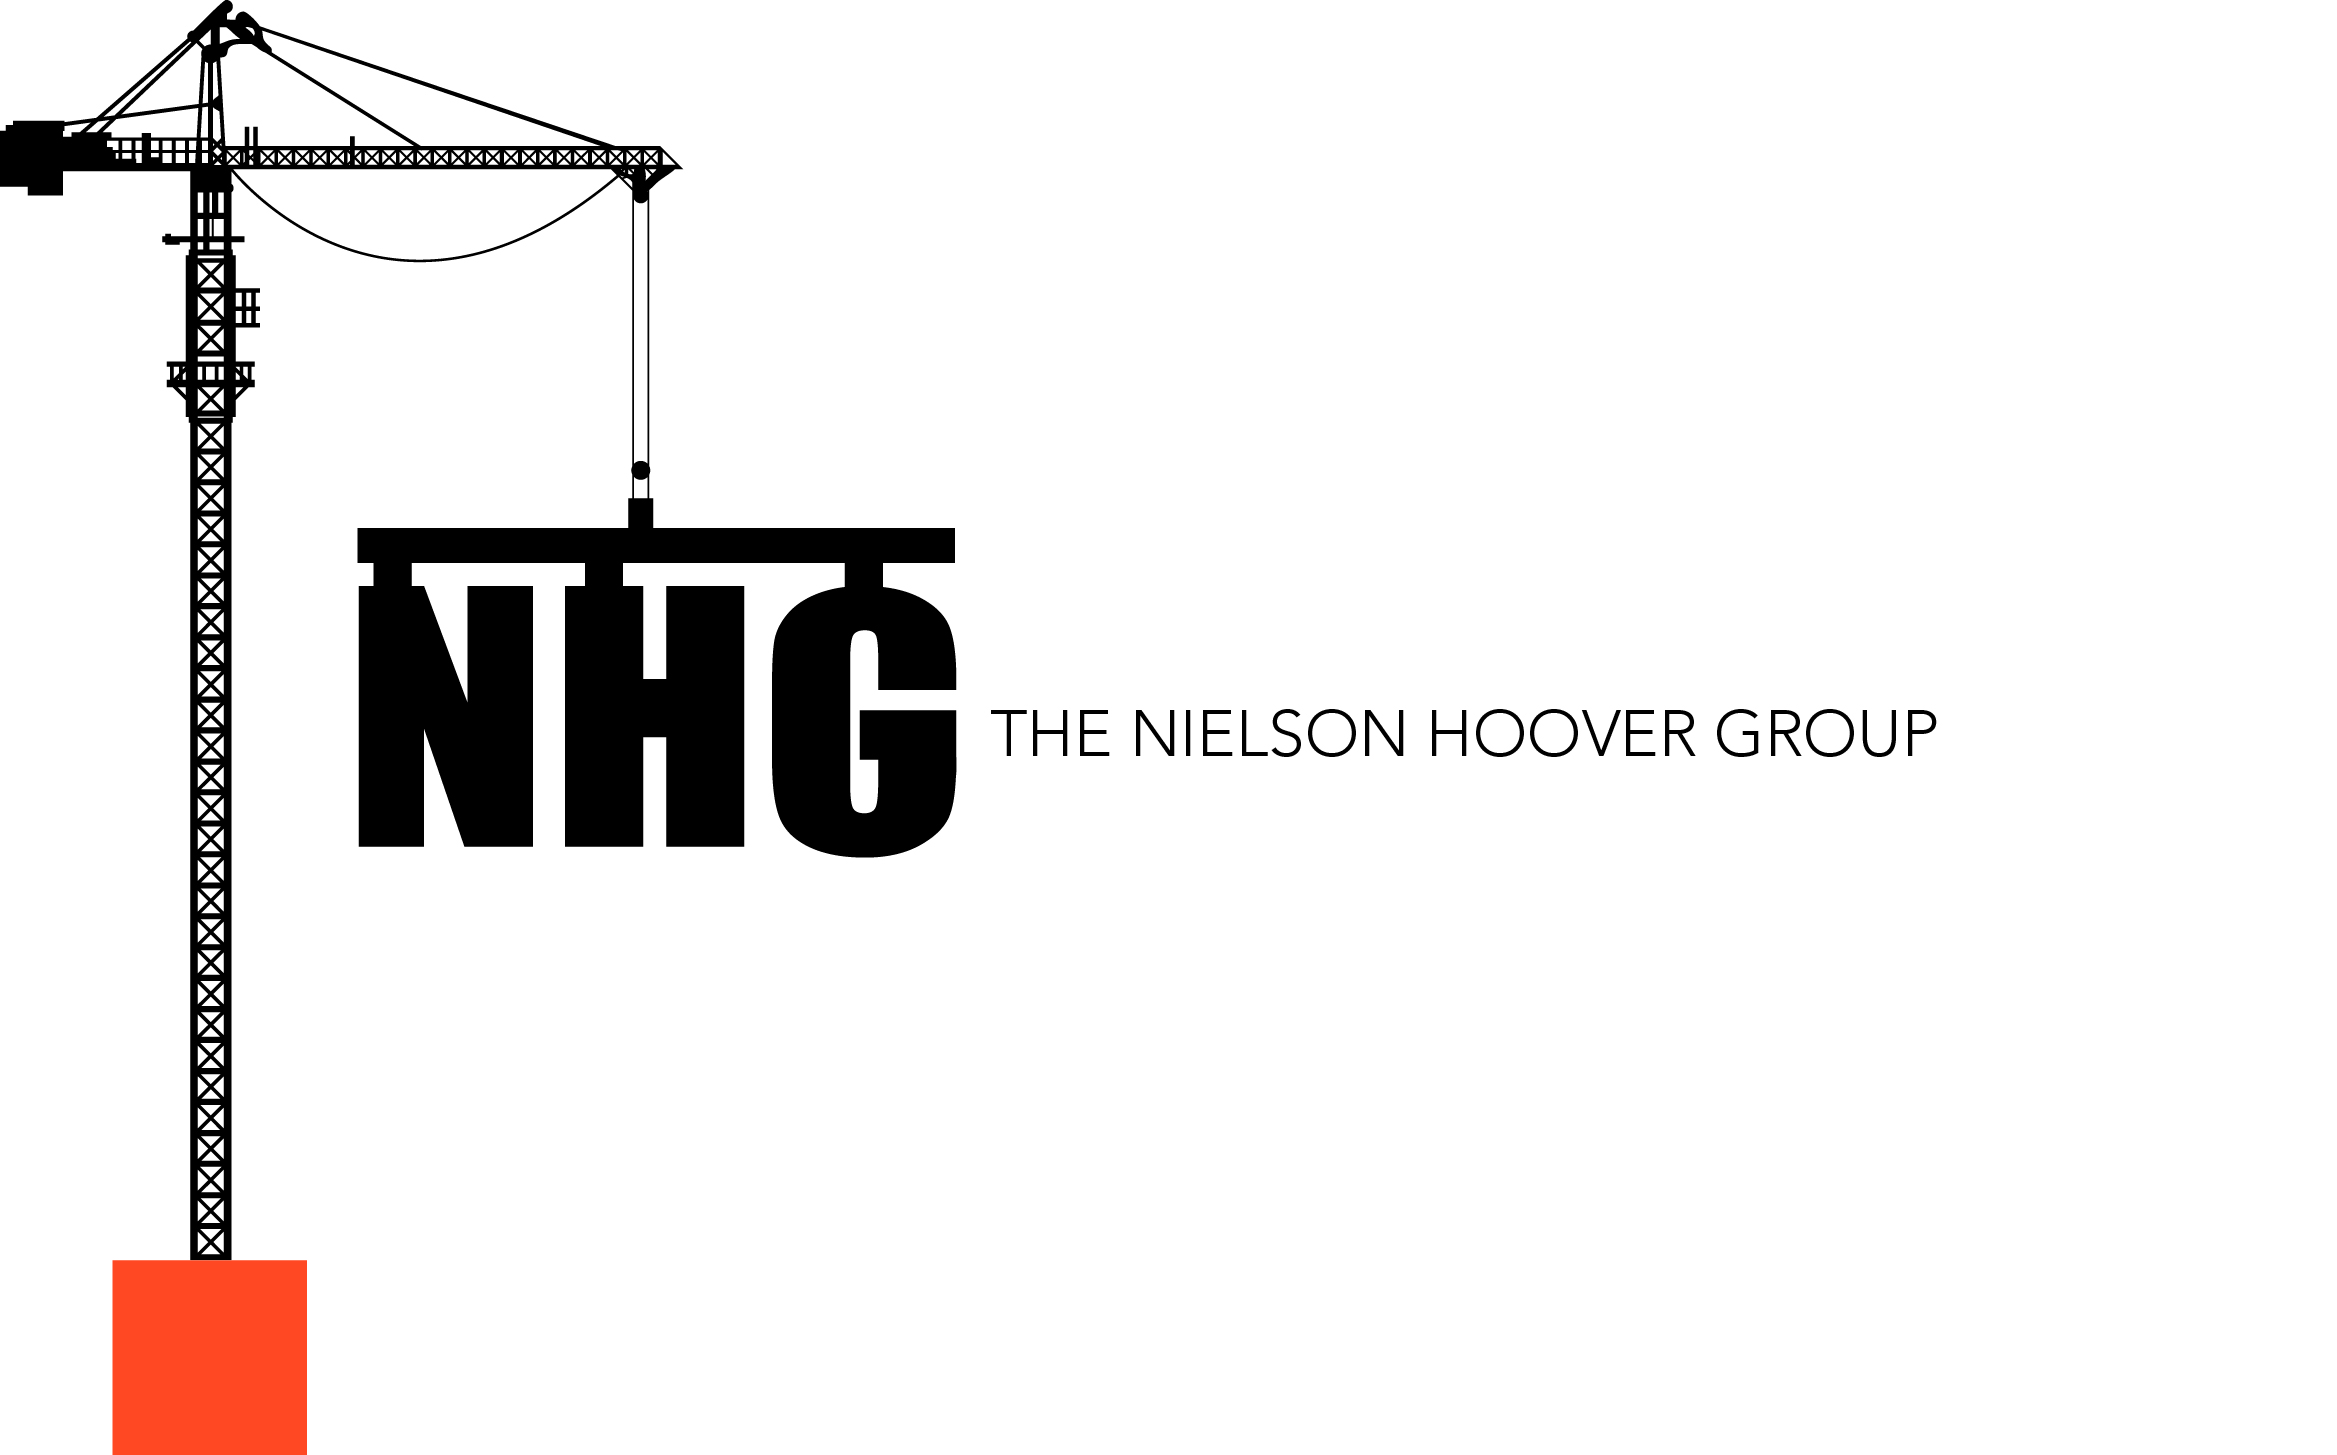 Co-sponsor Logo: Nielson Hoover Group